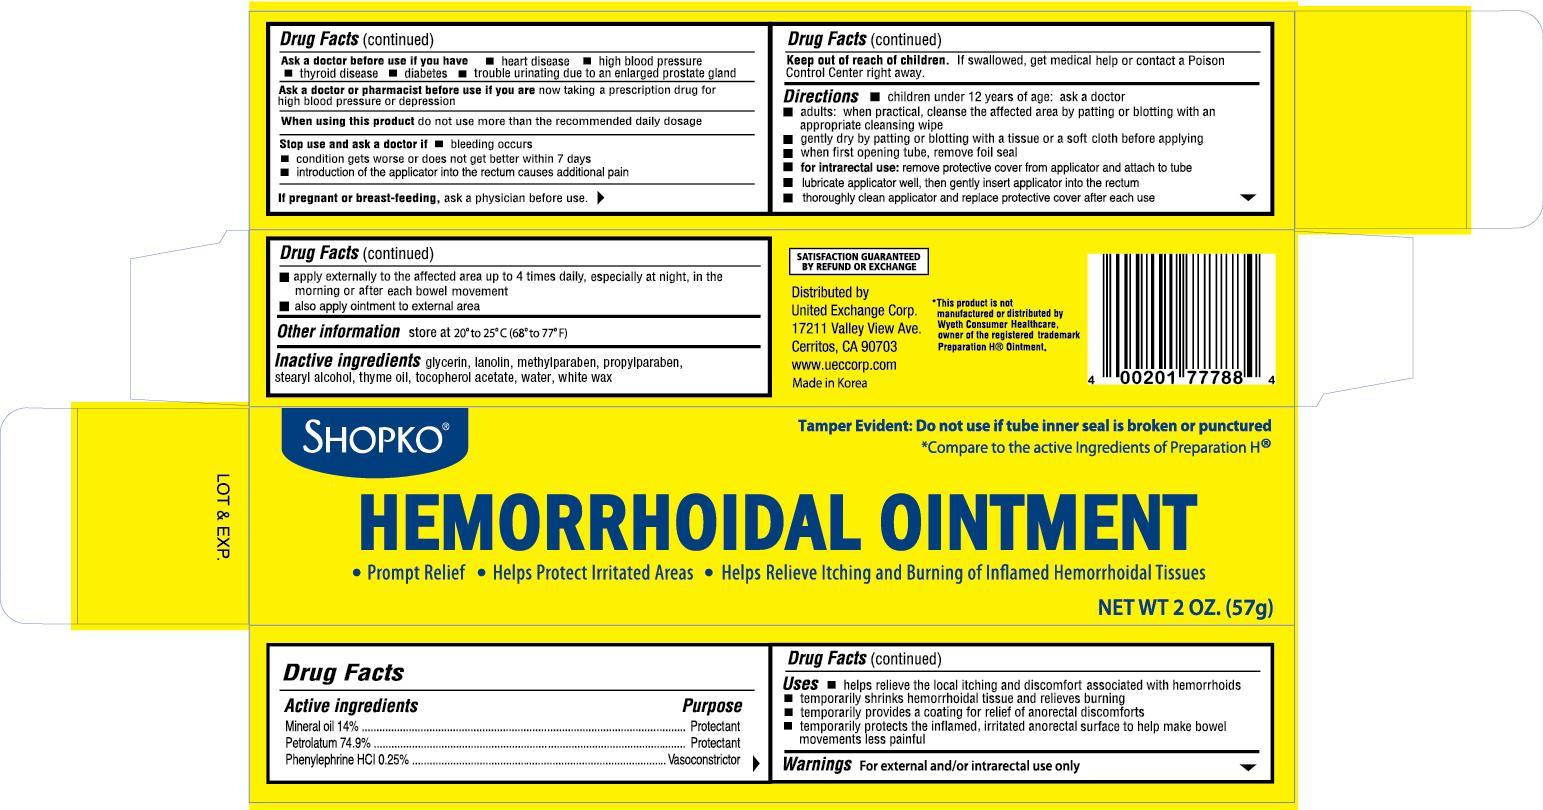 Shopko Hemorrhoidal (Mineral Oil) Ointment [United Exchange Corp]